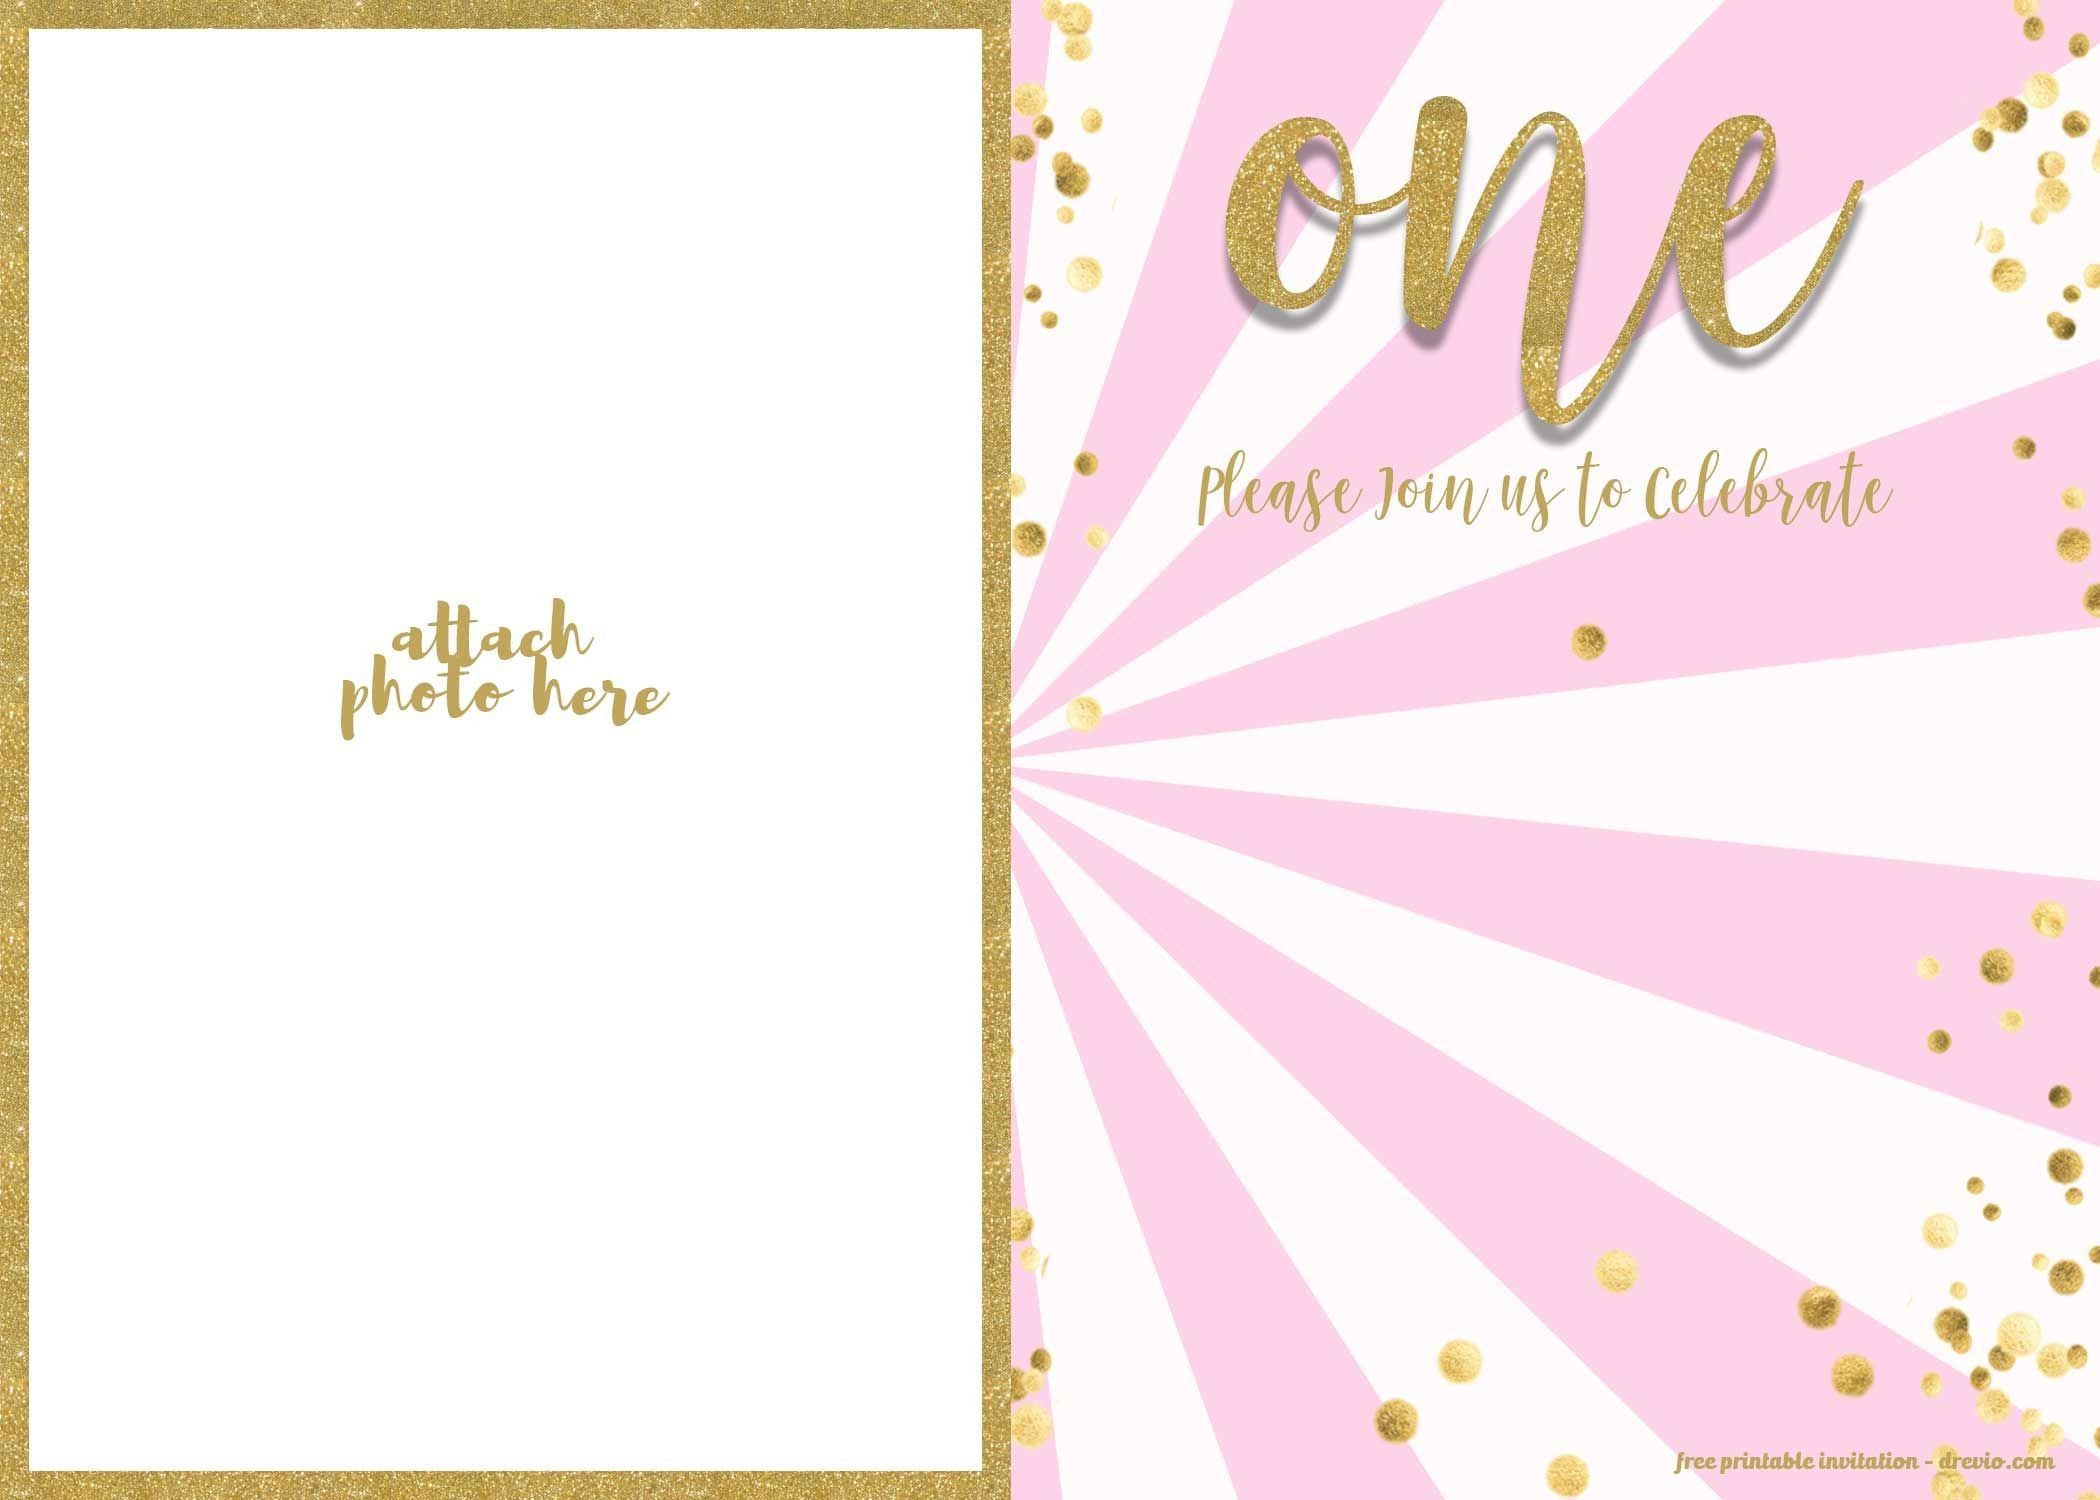 1st Birthday Invitation Template Free 1st Birthday Invitation Pink 1st Birthday Invitation Template First Birthday Invitations First Birthday Invitation Cards